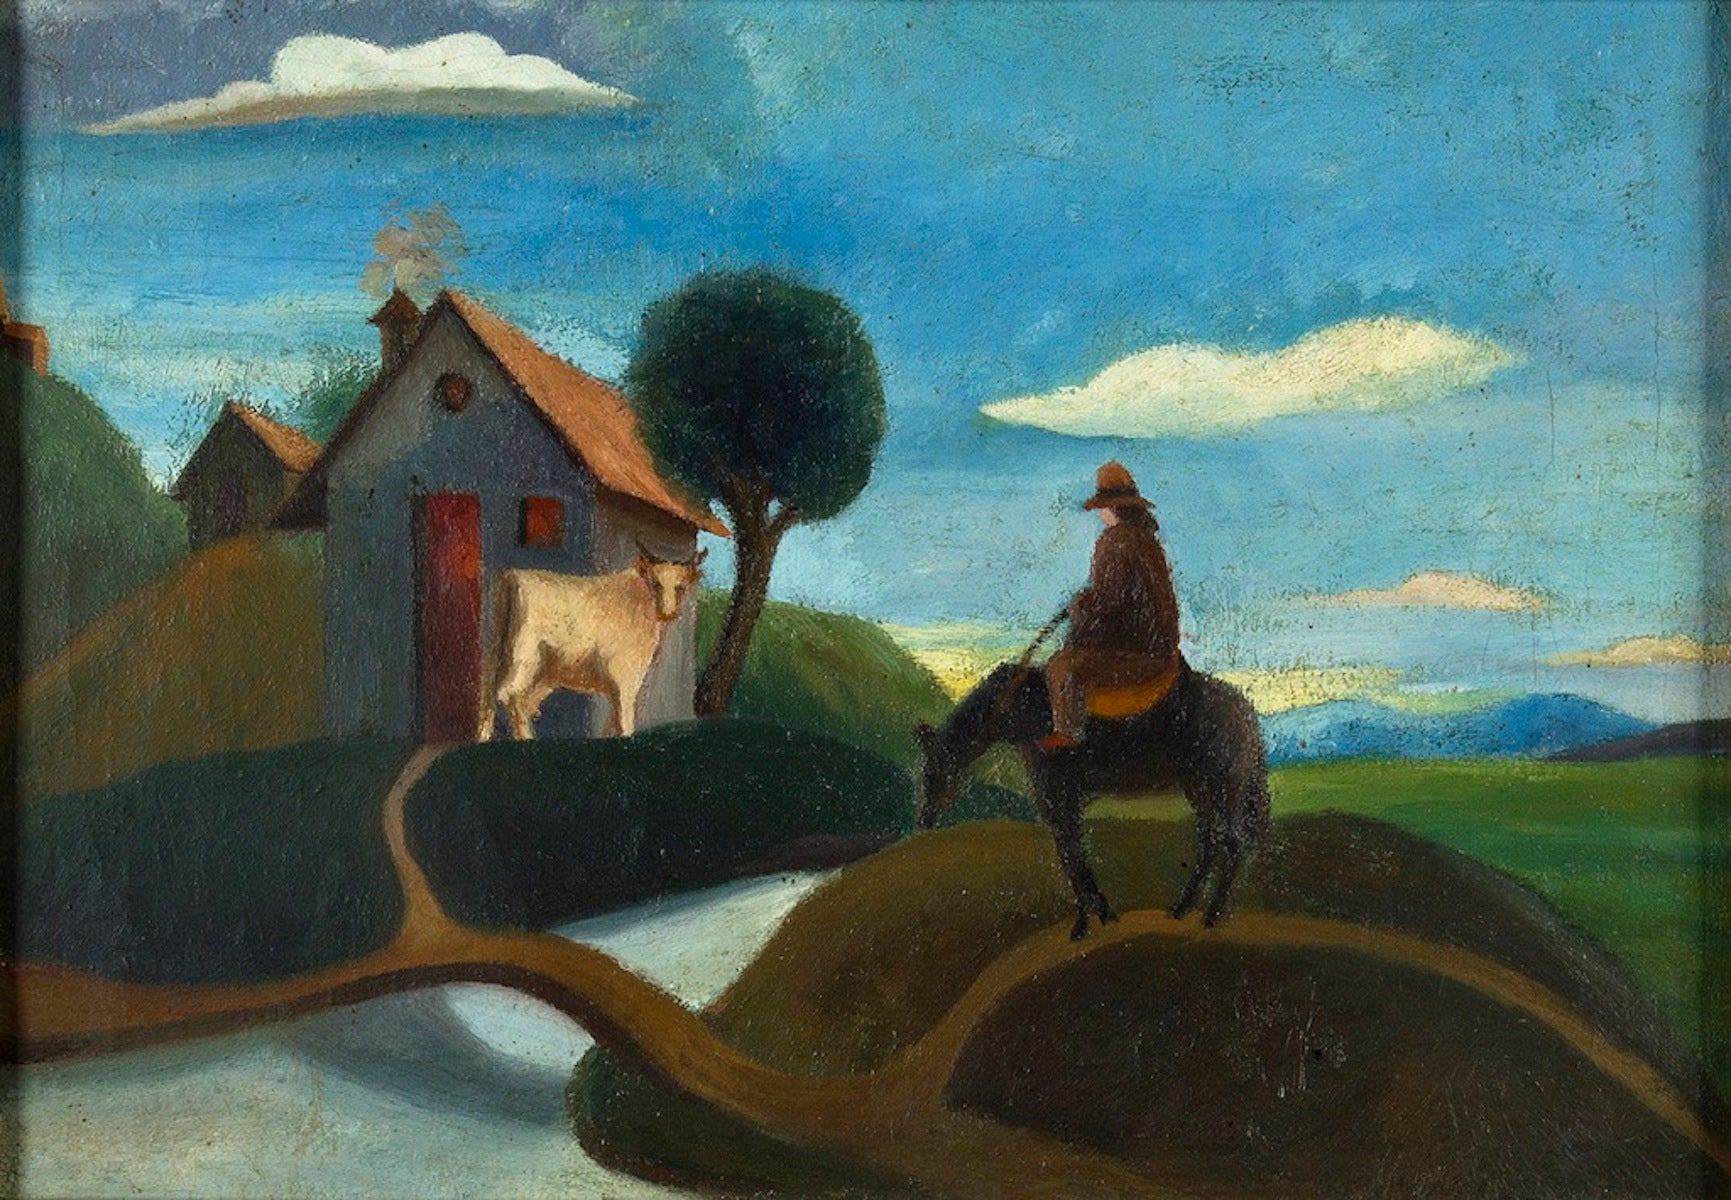 Landscape with Farmer - Oil on Canvas - Early 20th Century